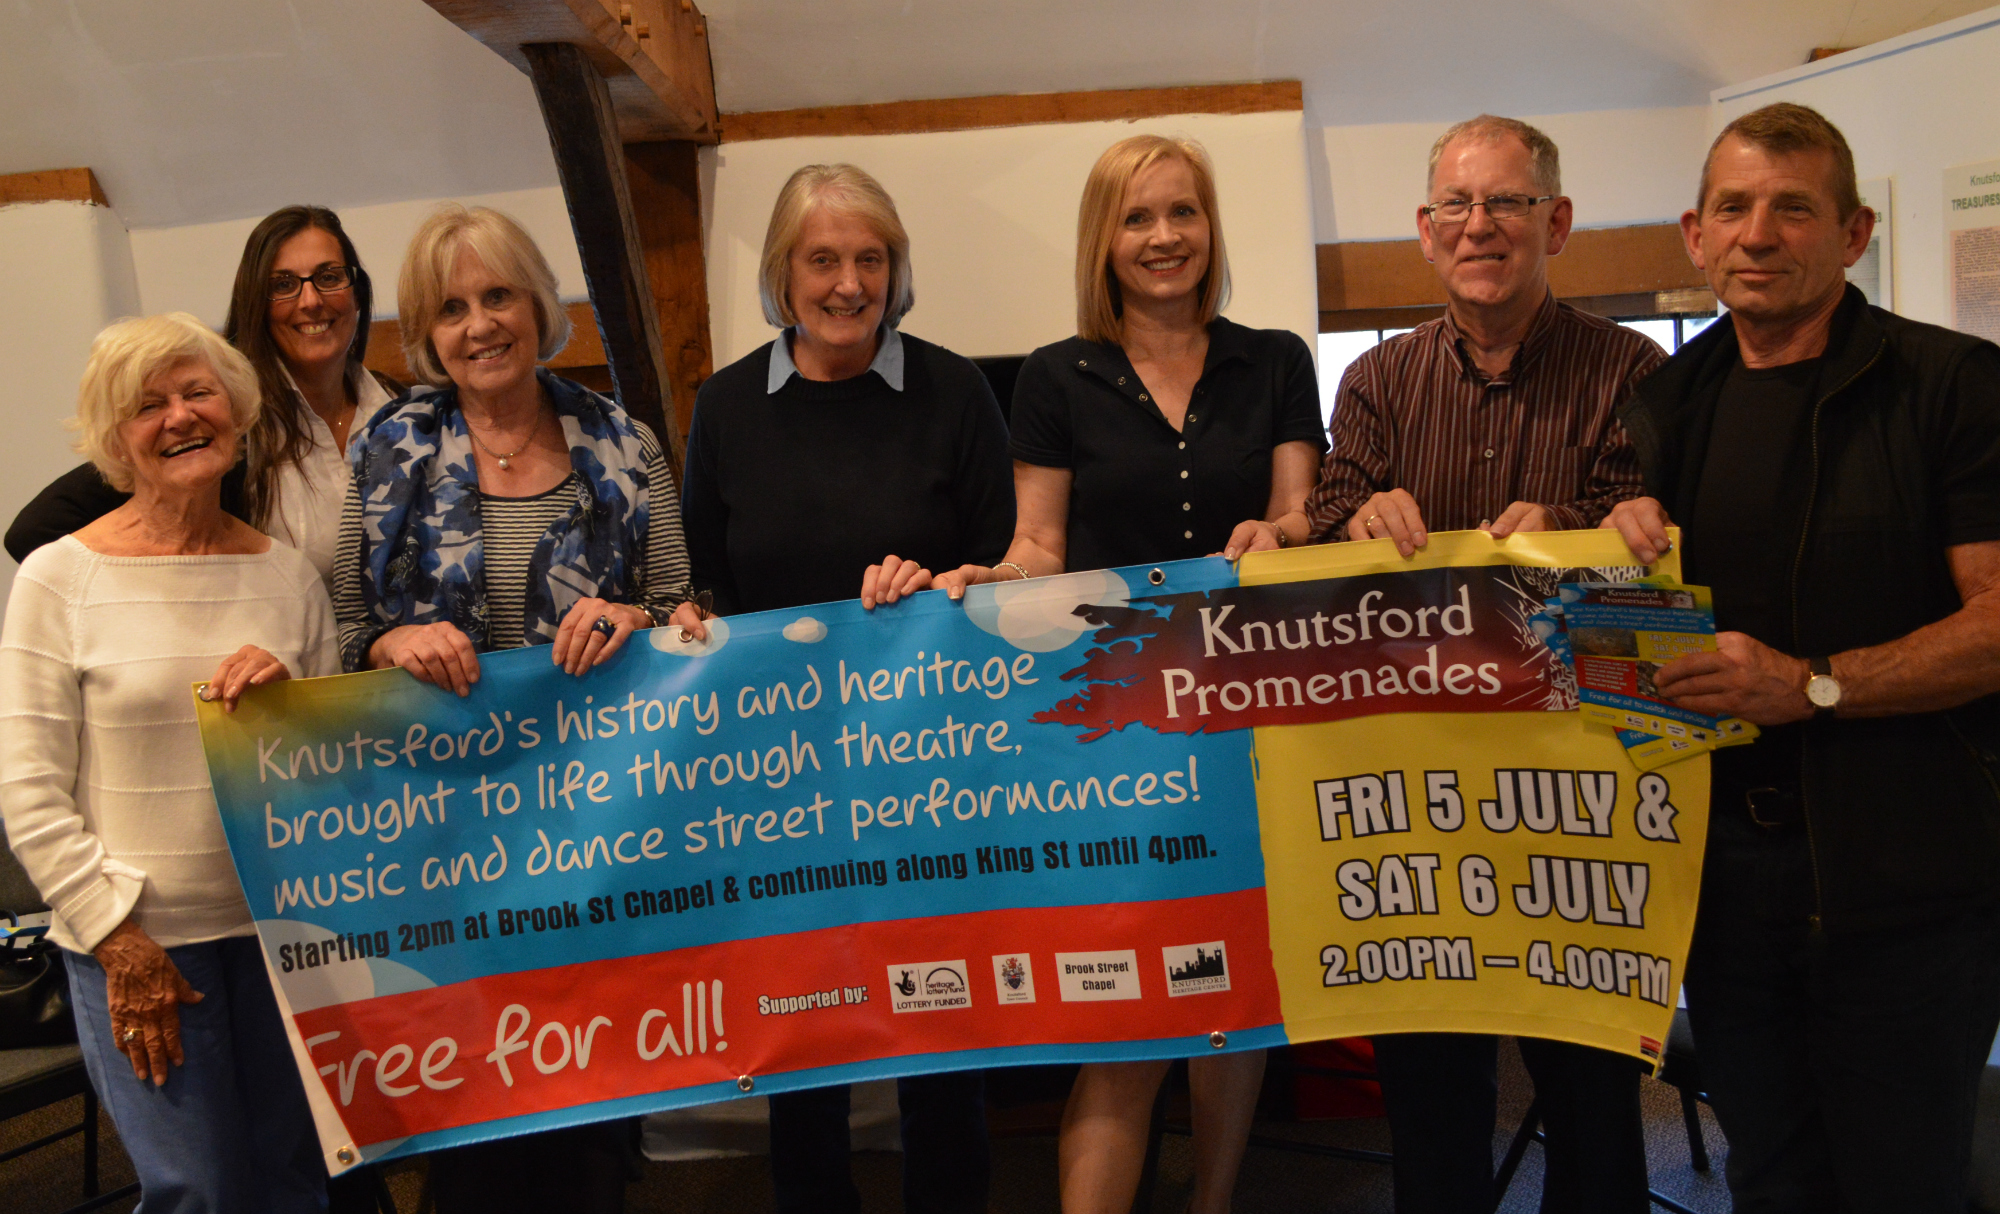 KNUTSFORD PROMENADES BANNER UNVEILED AT HERITAGE CENTRE